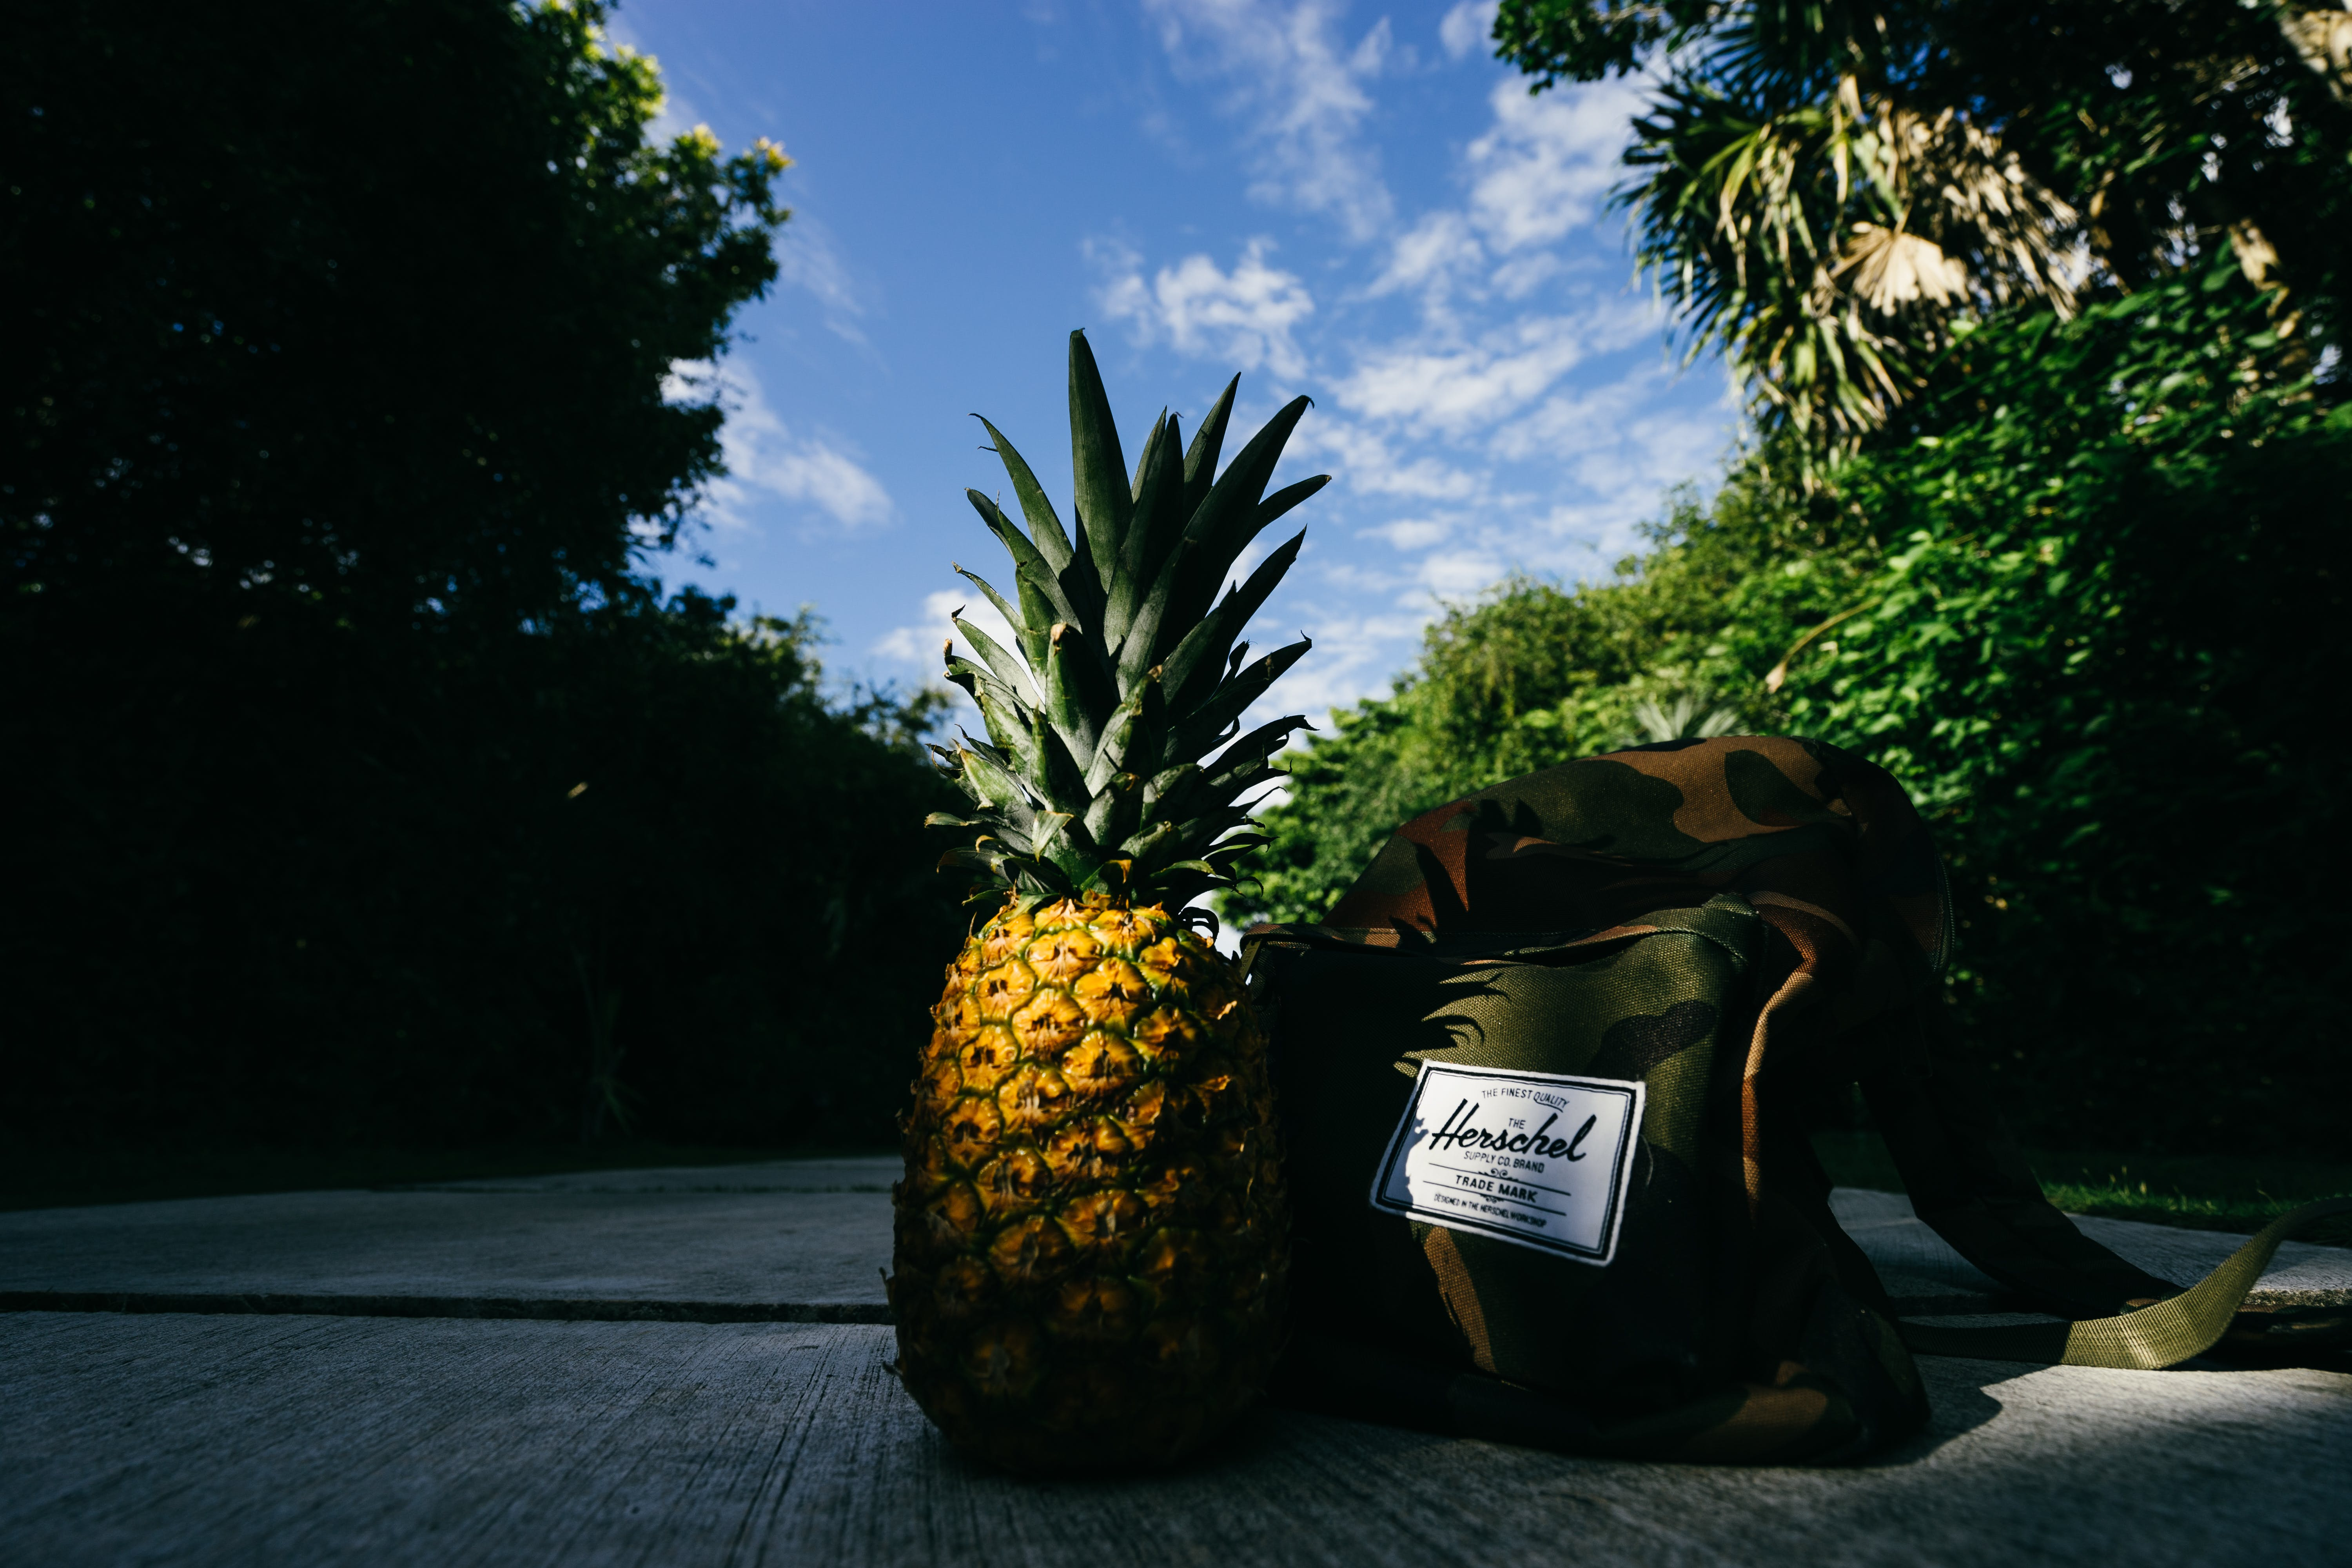 Pineapple Next to Herschel Backpack